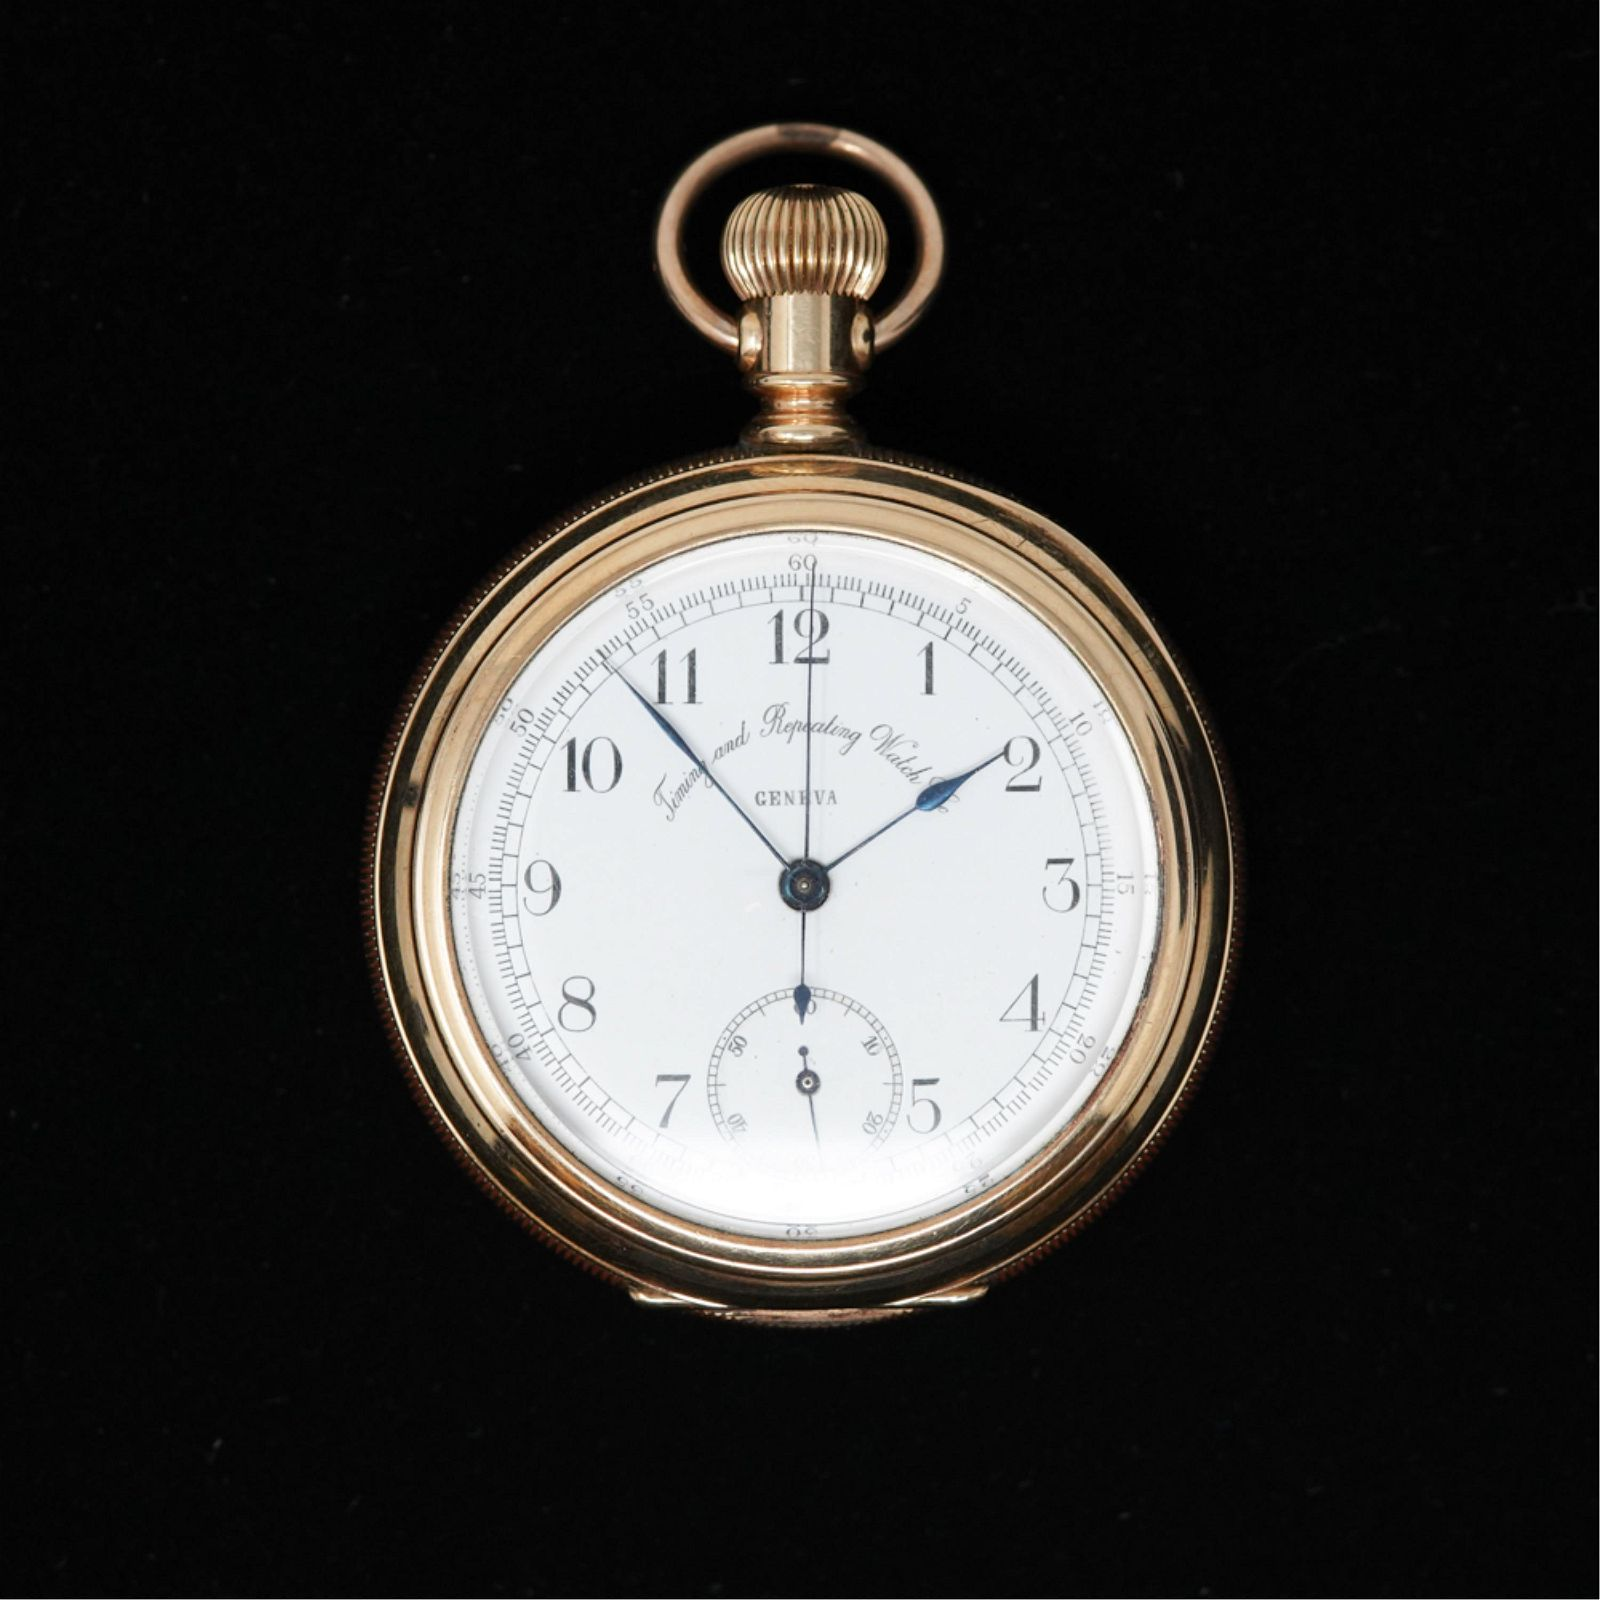 14K GOLD TIMING & REPEATING WATCH CO. POCKET WATCH